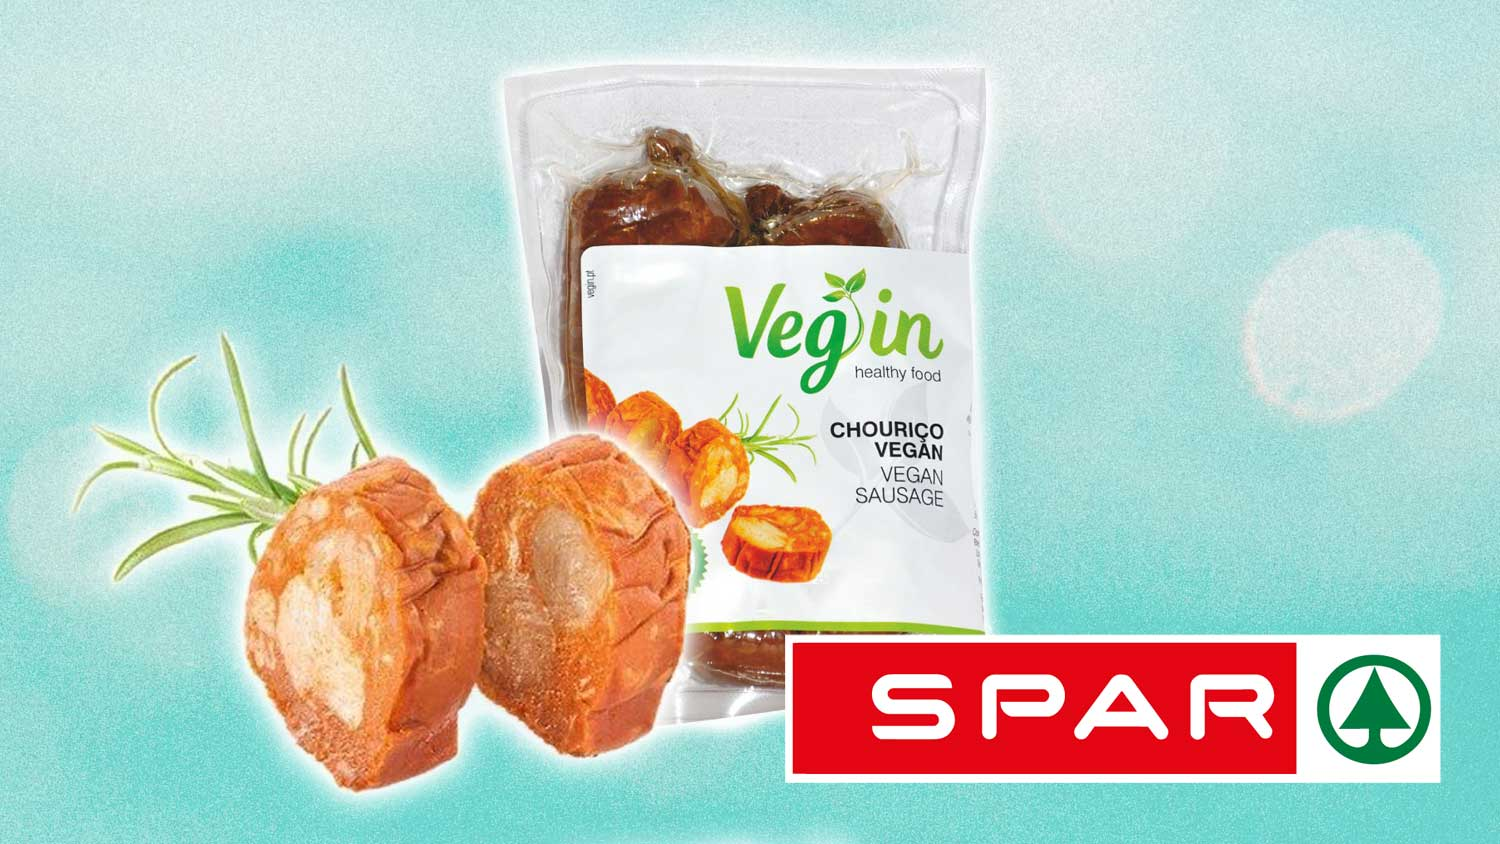 You Can Now Buy Huge Slabs of Vegan Chorizo at Spar